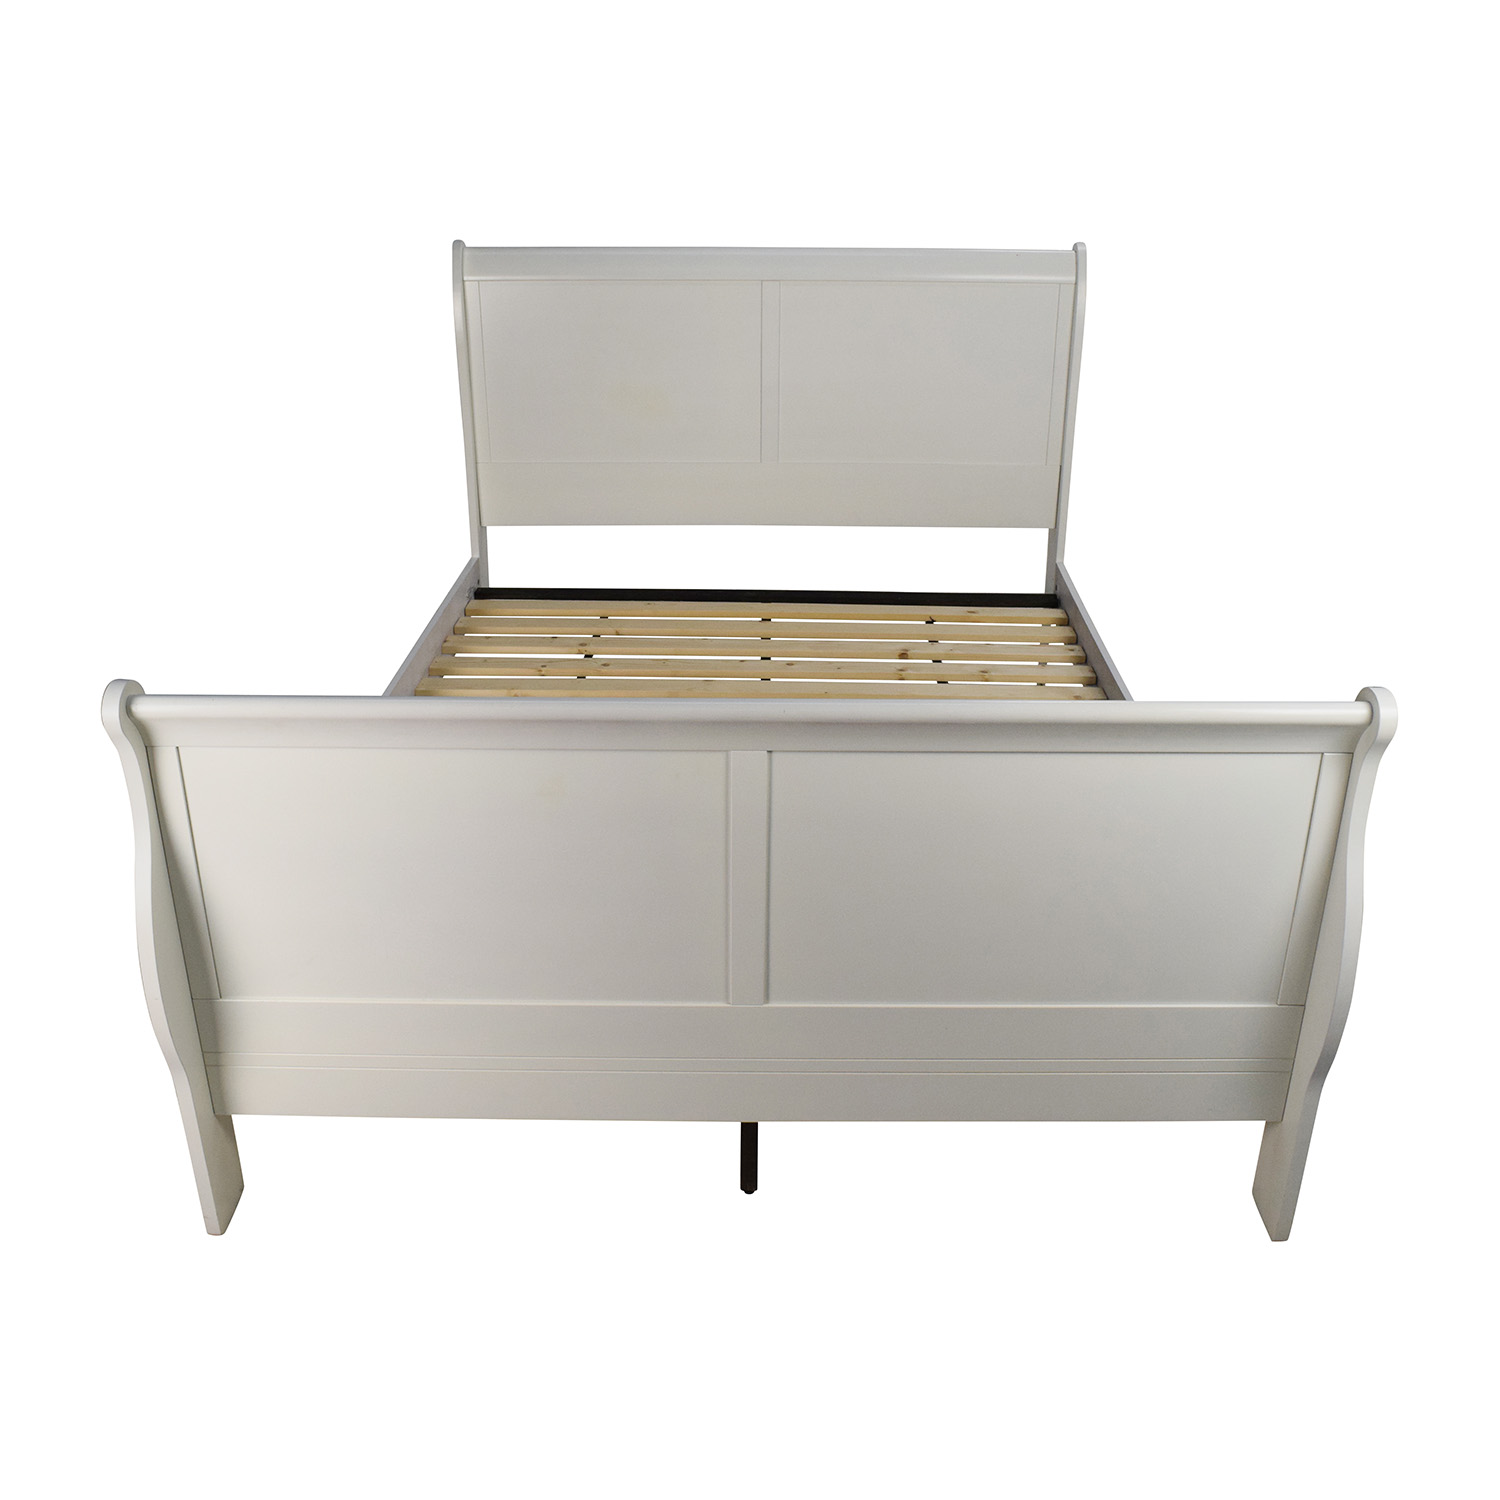 - 84% OFF - White Wooden Queen Sleigh Bed / Beds